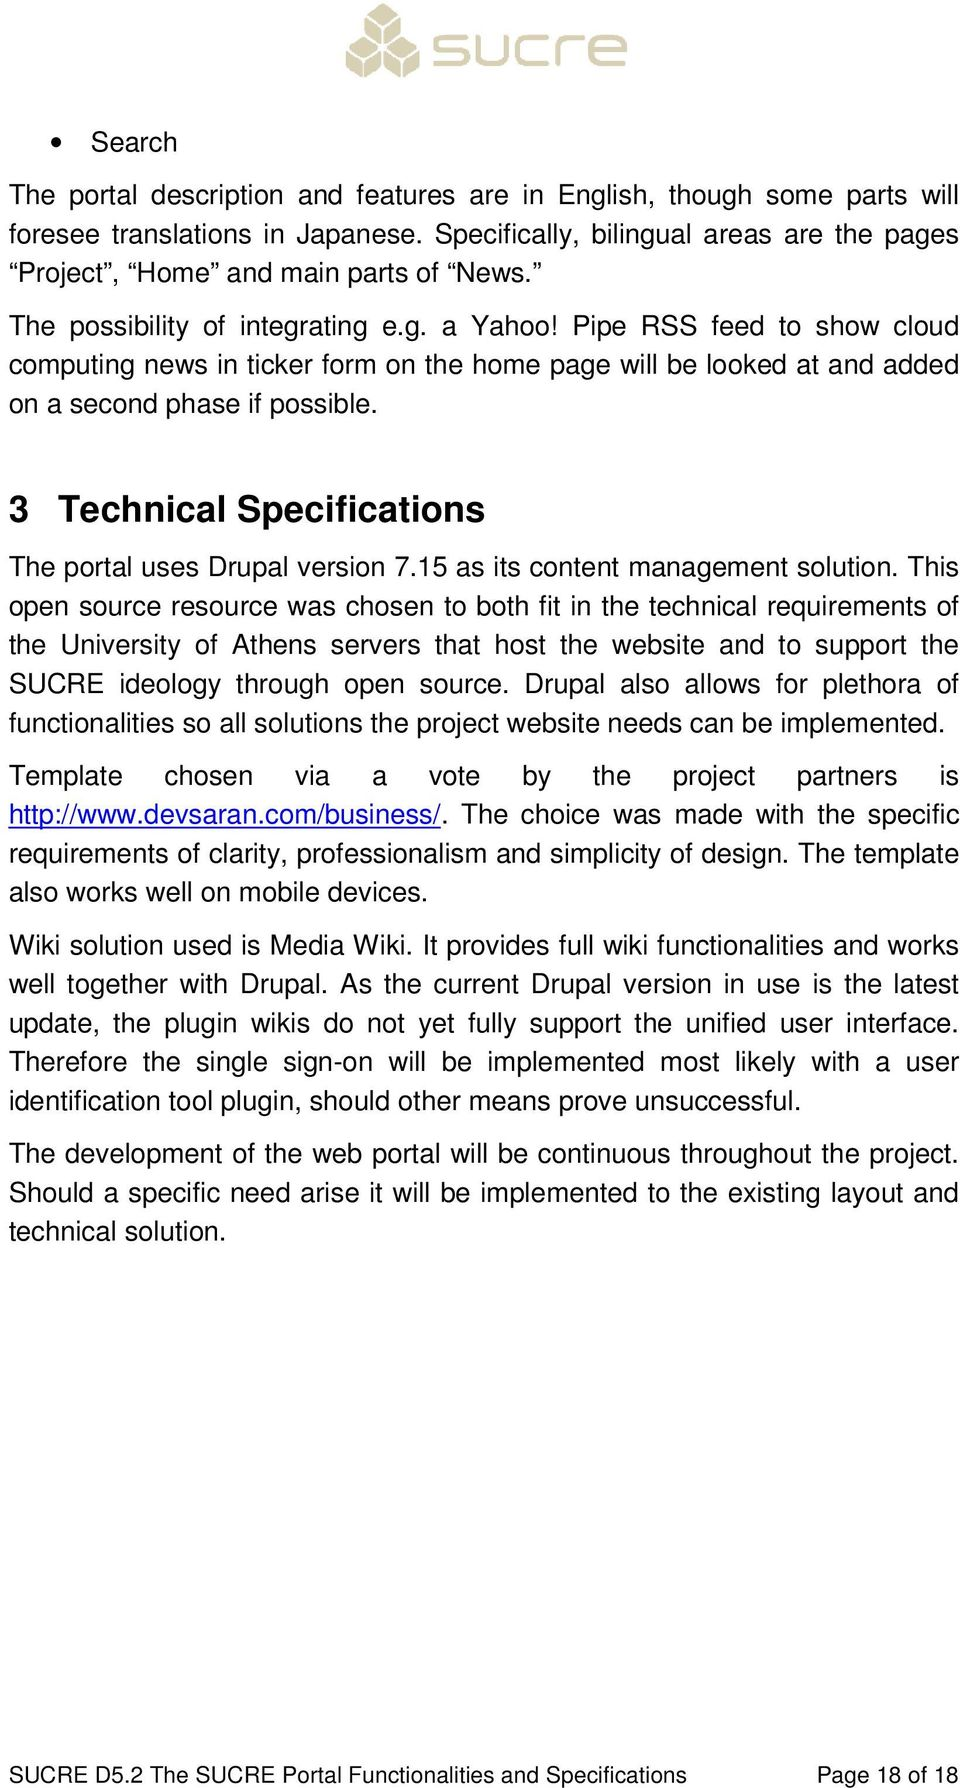 3 Technical Specifications The portal uses Drupal version 7.15 as its content management solution.